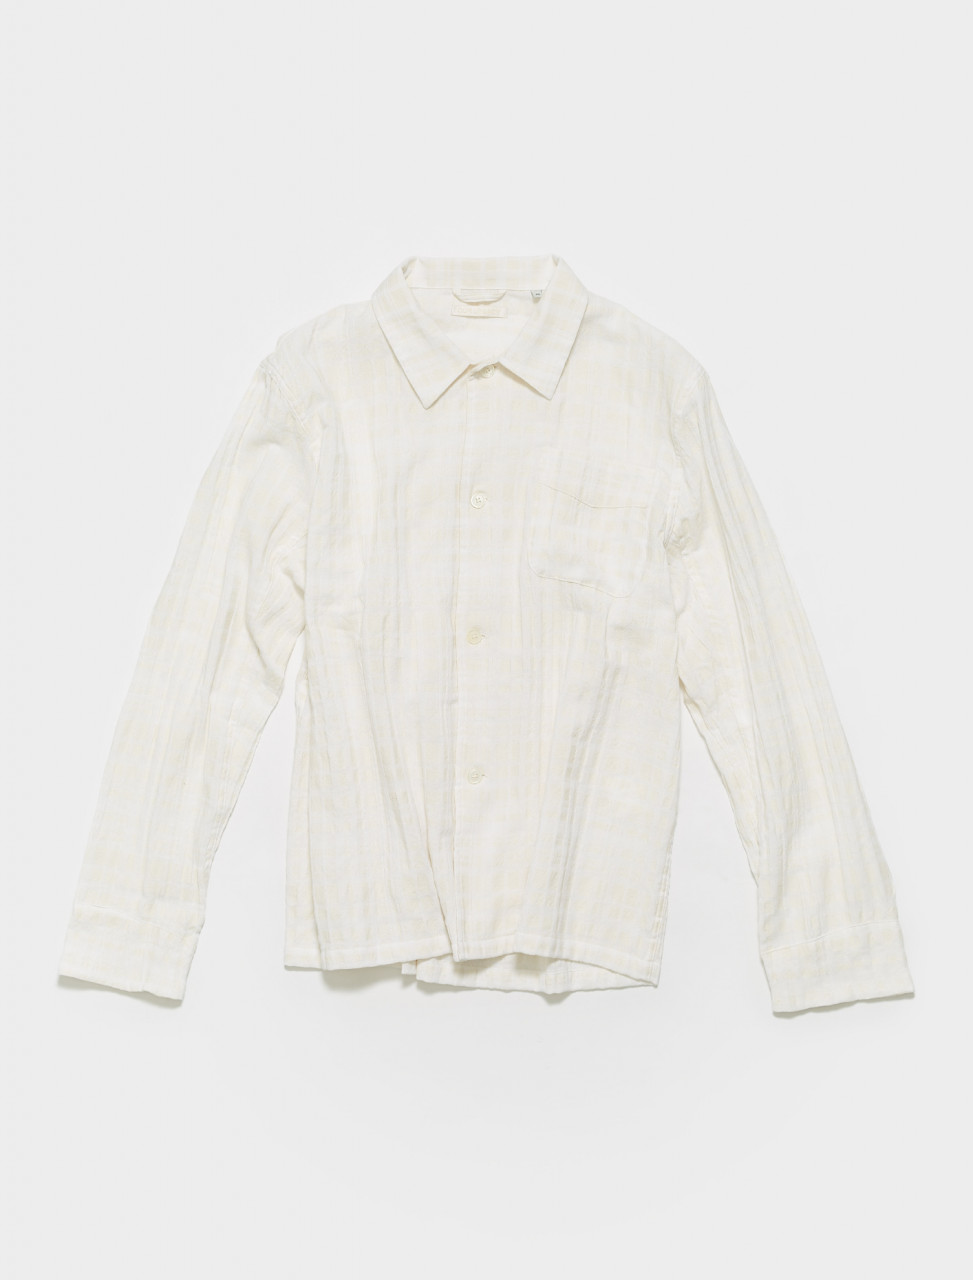 M2212BSW OUR LEGACY BOX SHIRT IN WHITE BEIGE CHECK